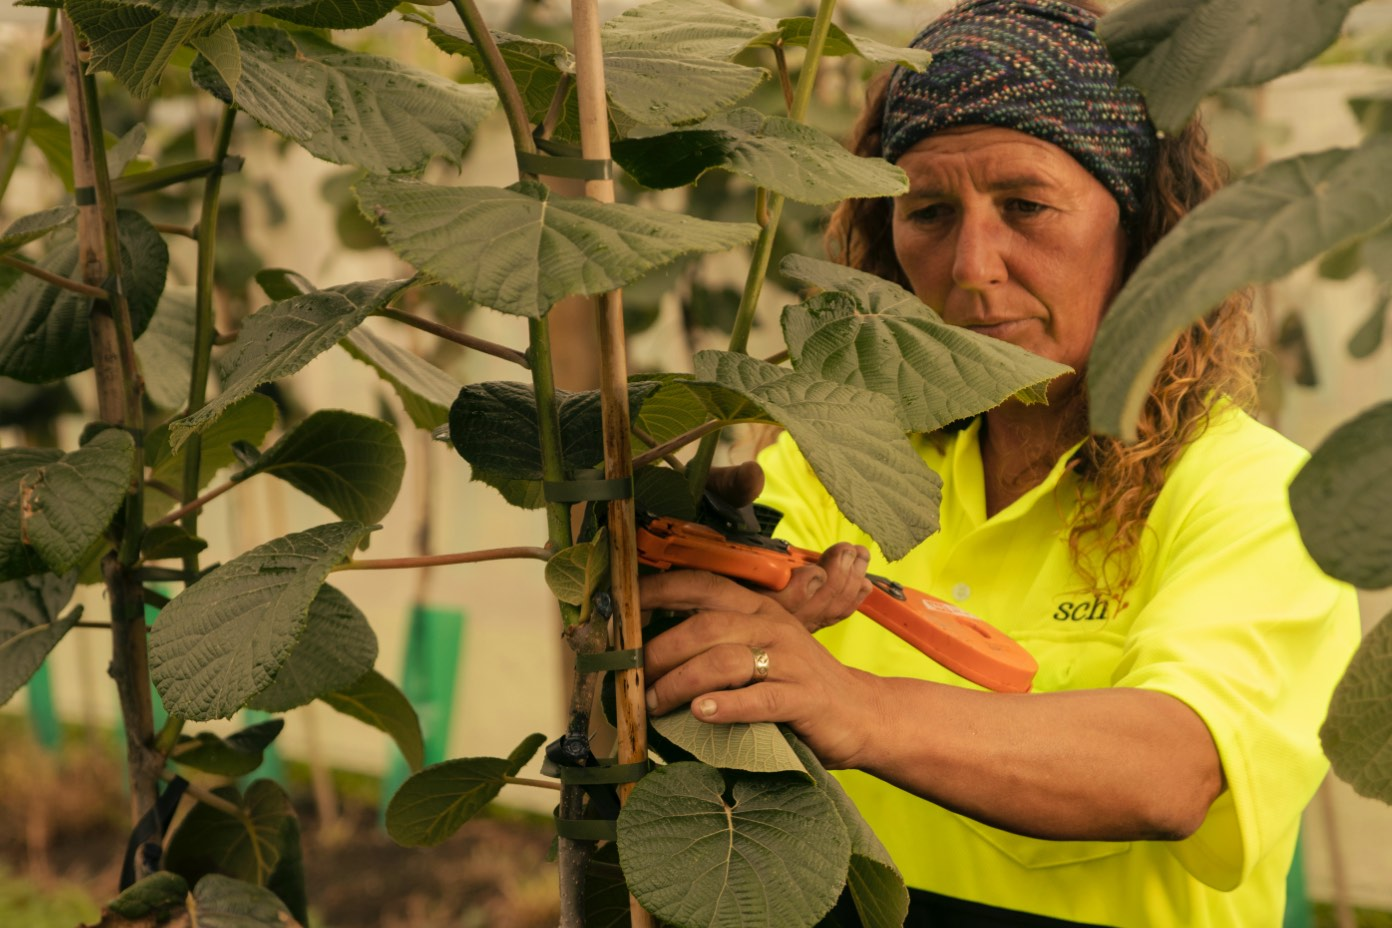 A unique business model, Liberty Orchard Developed By Southern Cross Horticulture in Bay of Plenty